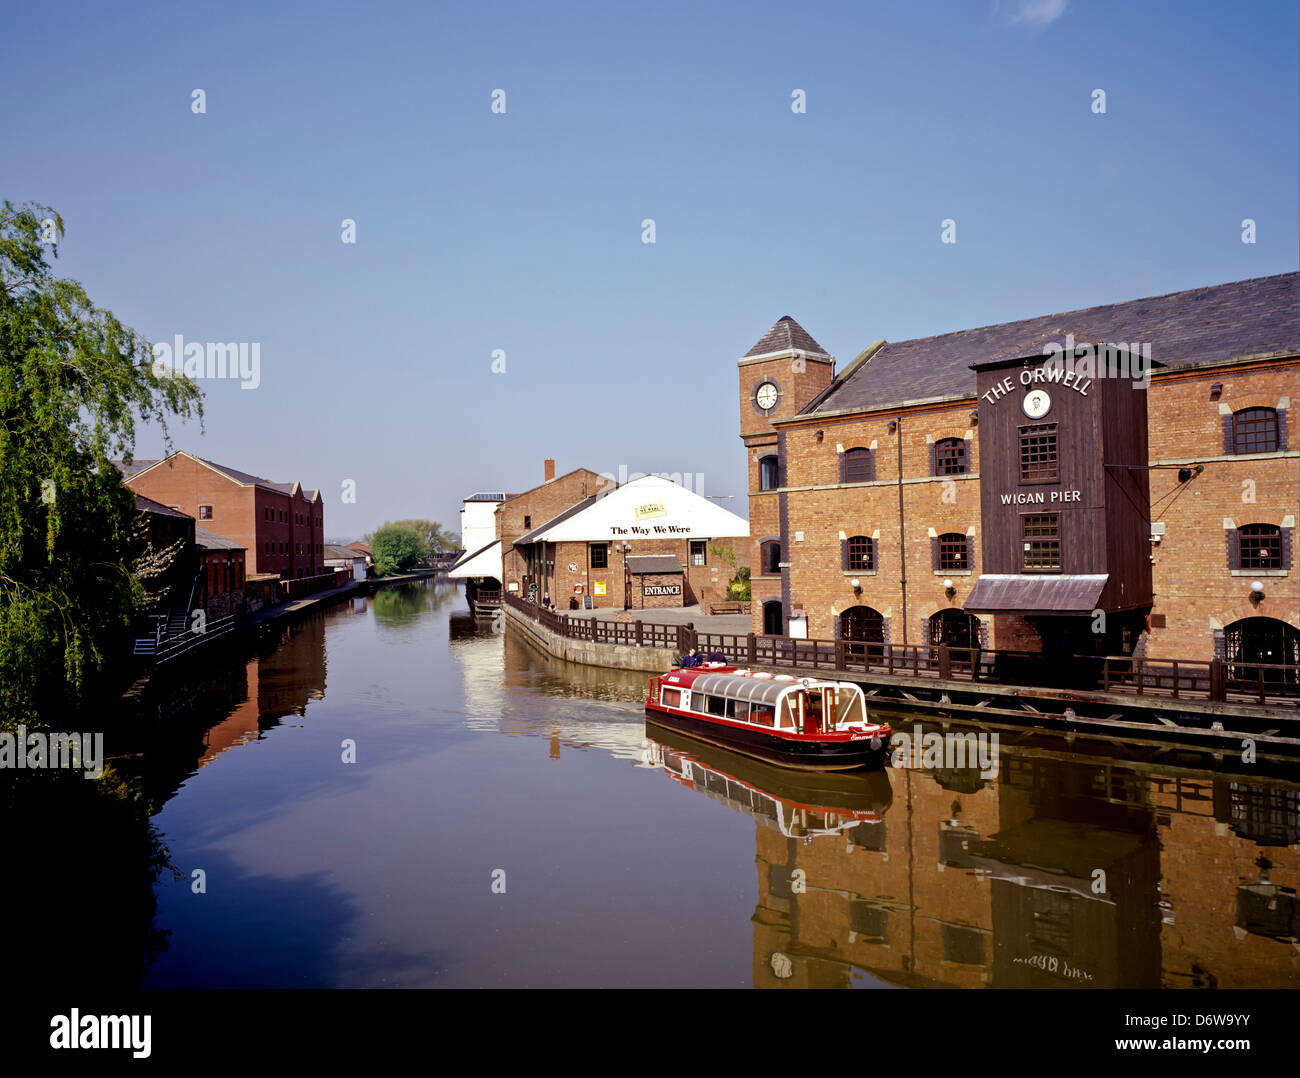 8512. Wigan Pier & Leeds Liverpool Canal, Wigan, Greater Manchester, England, Europe - Stock Image